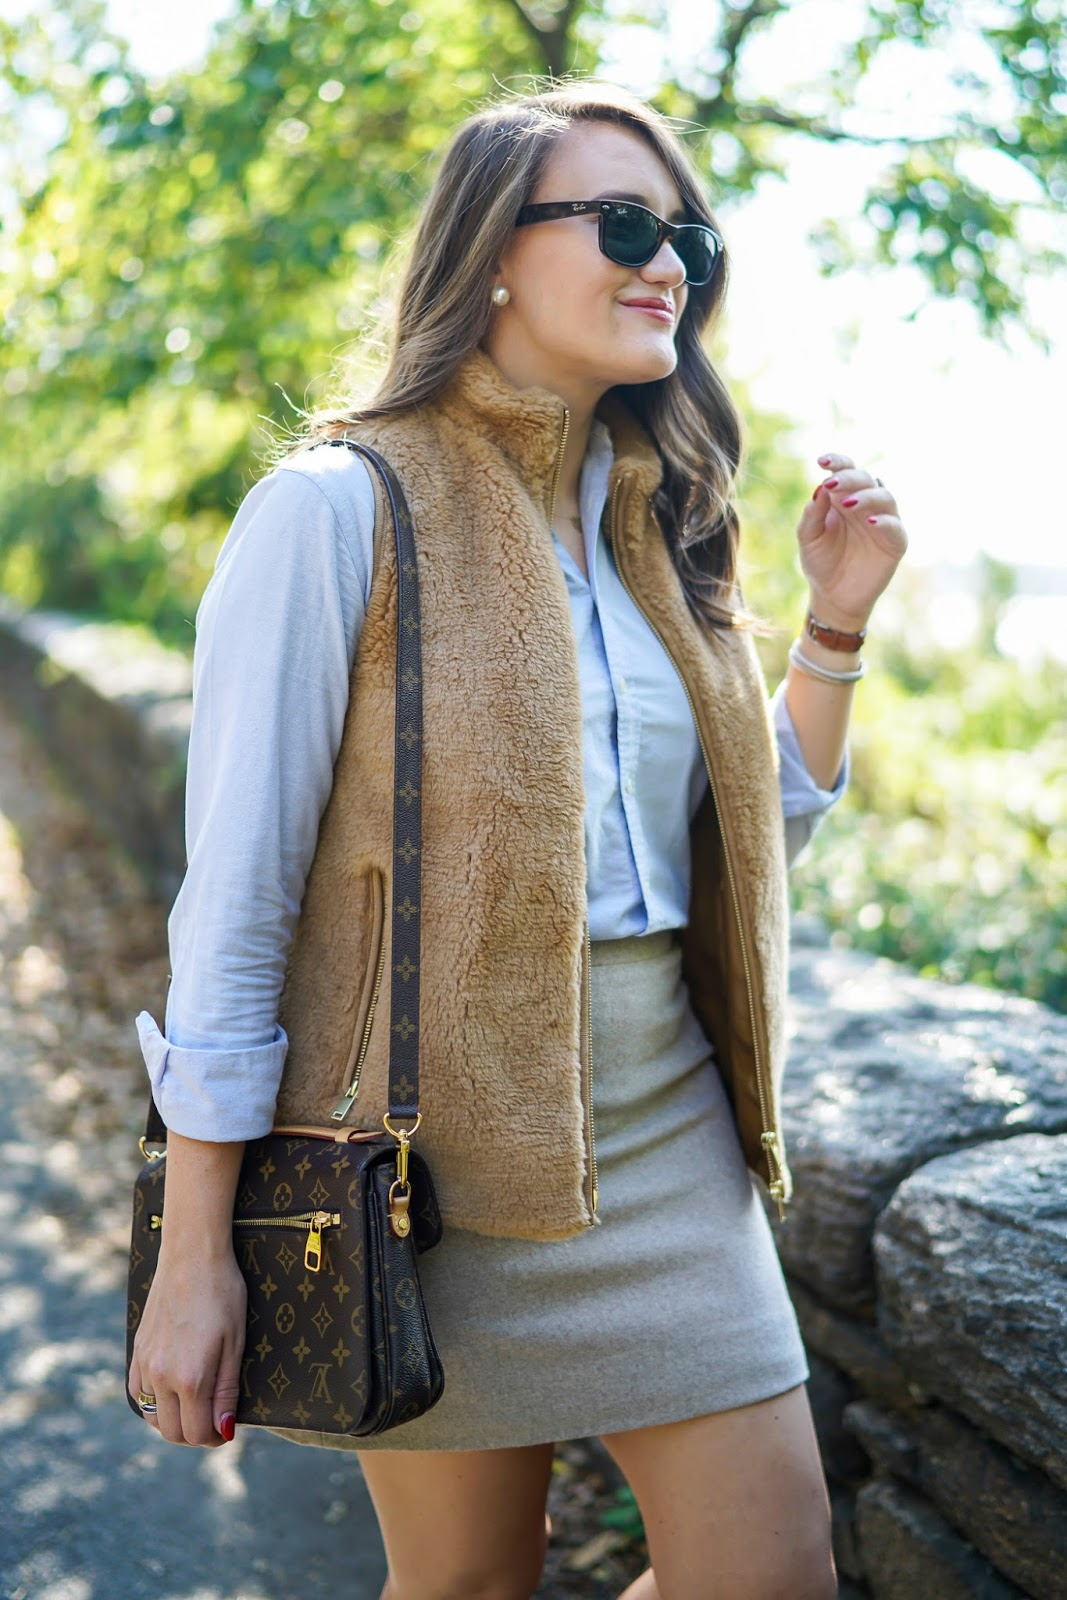 J. Crew Fleece Excursion Vest, Louis Vuitton Purse